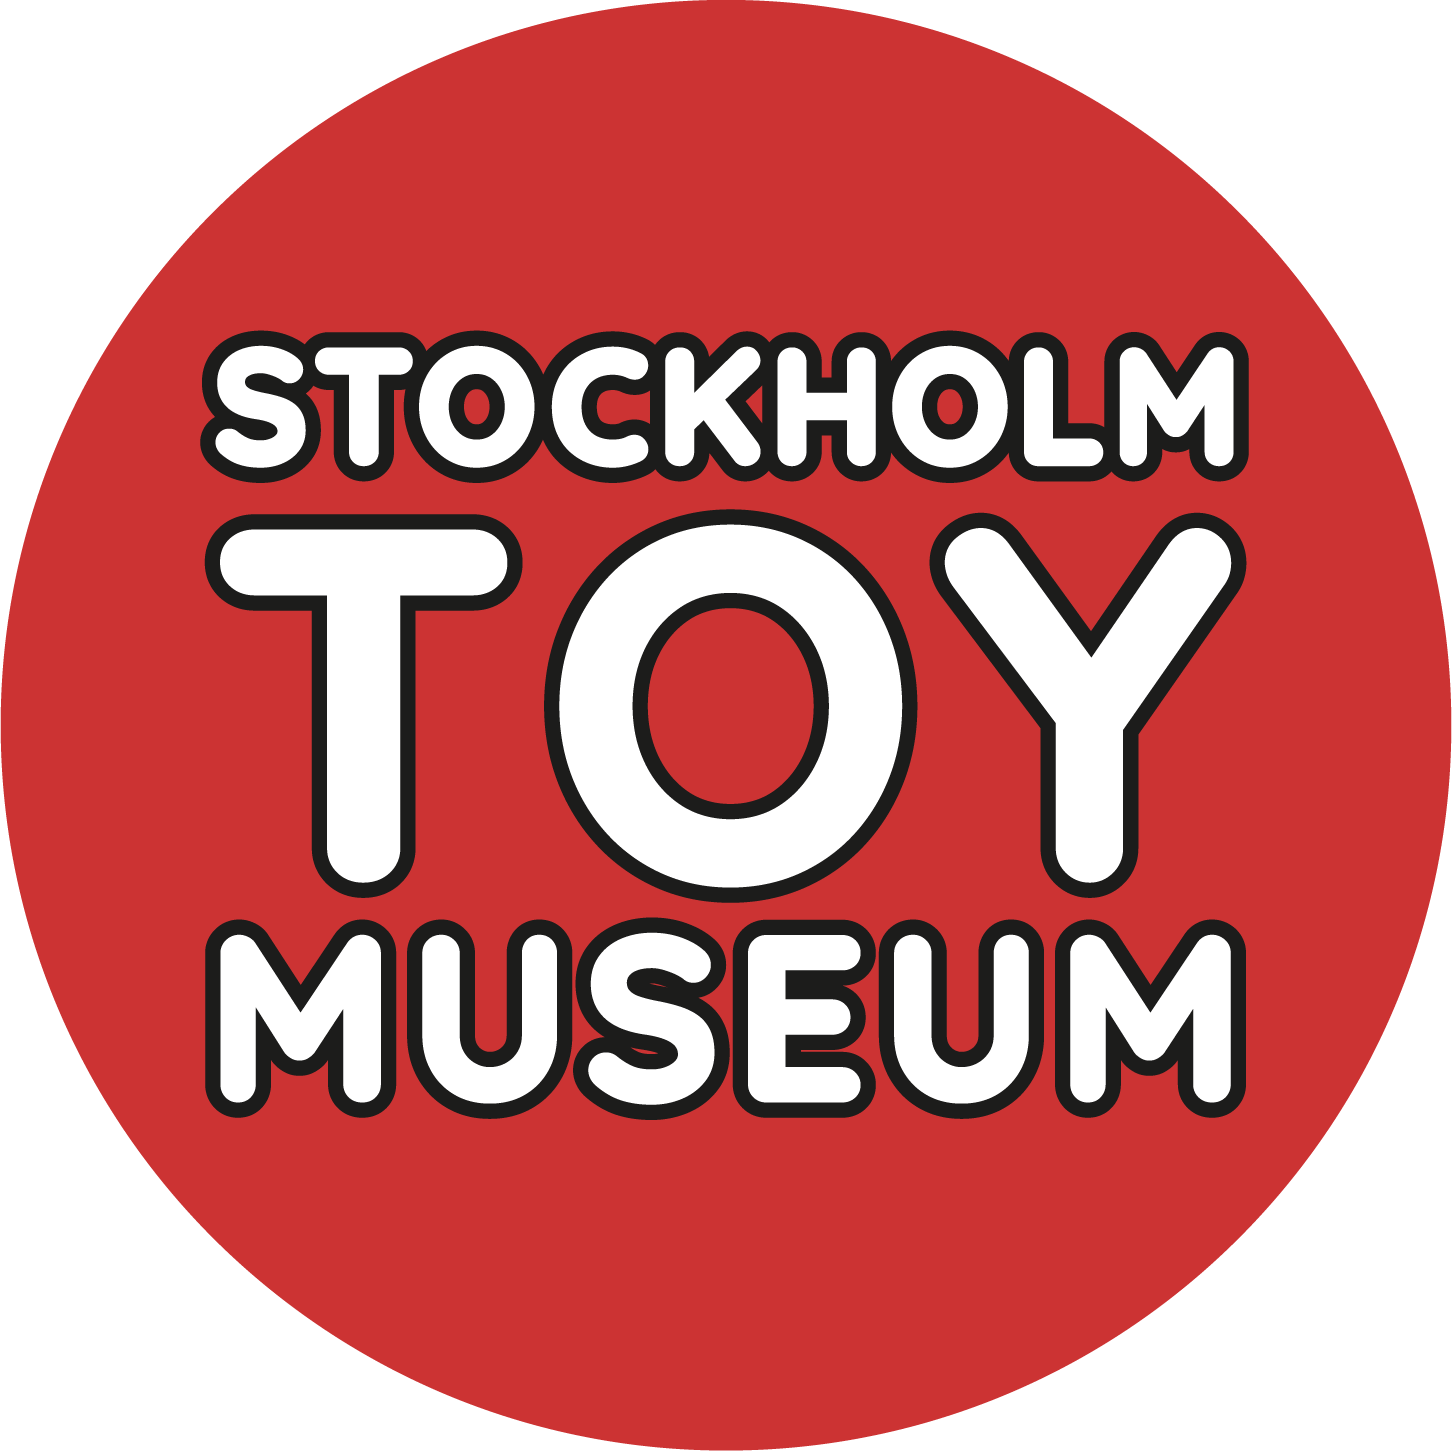 Stockholm Toy Museum